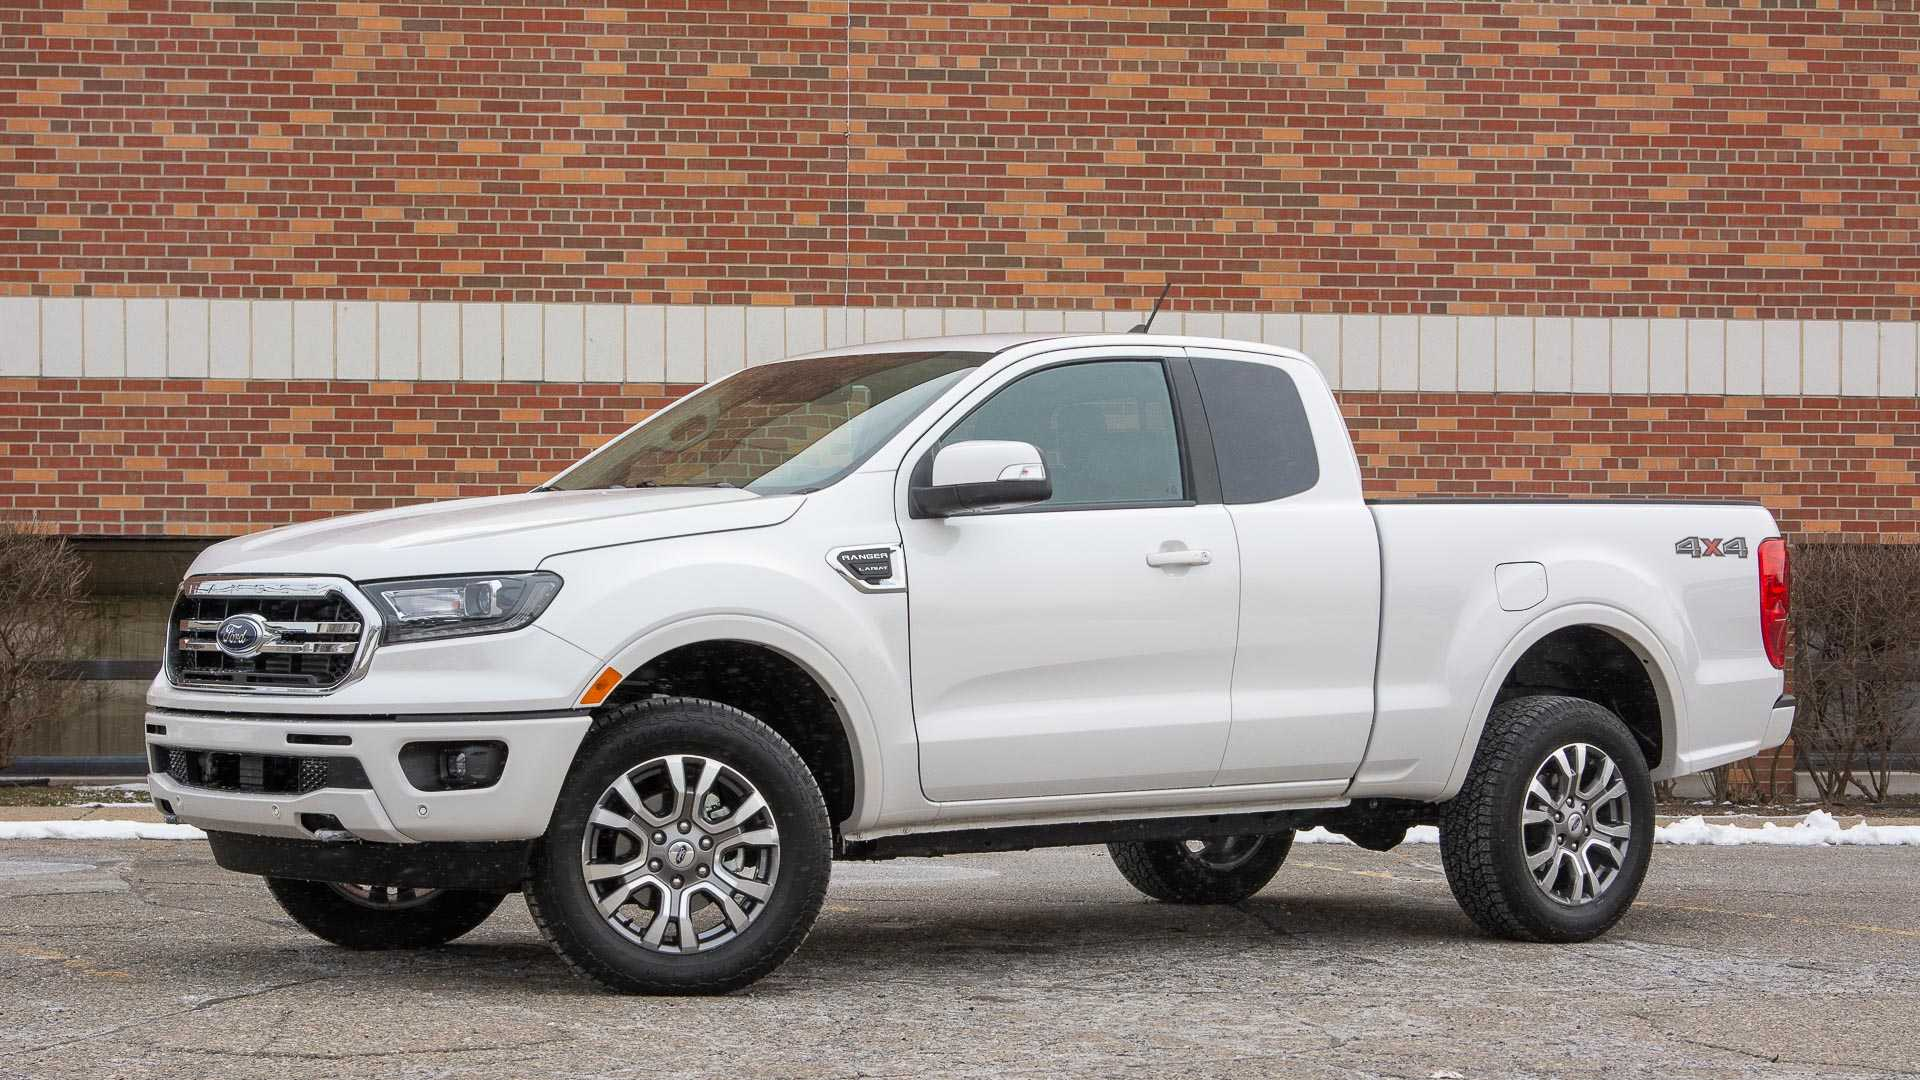 2019 Ford Ranger Lariat Review: Already Approaching Its